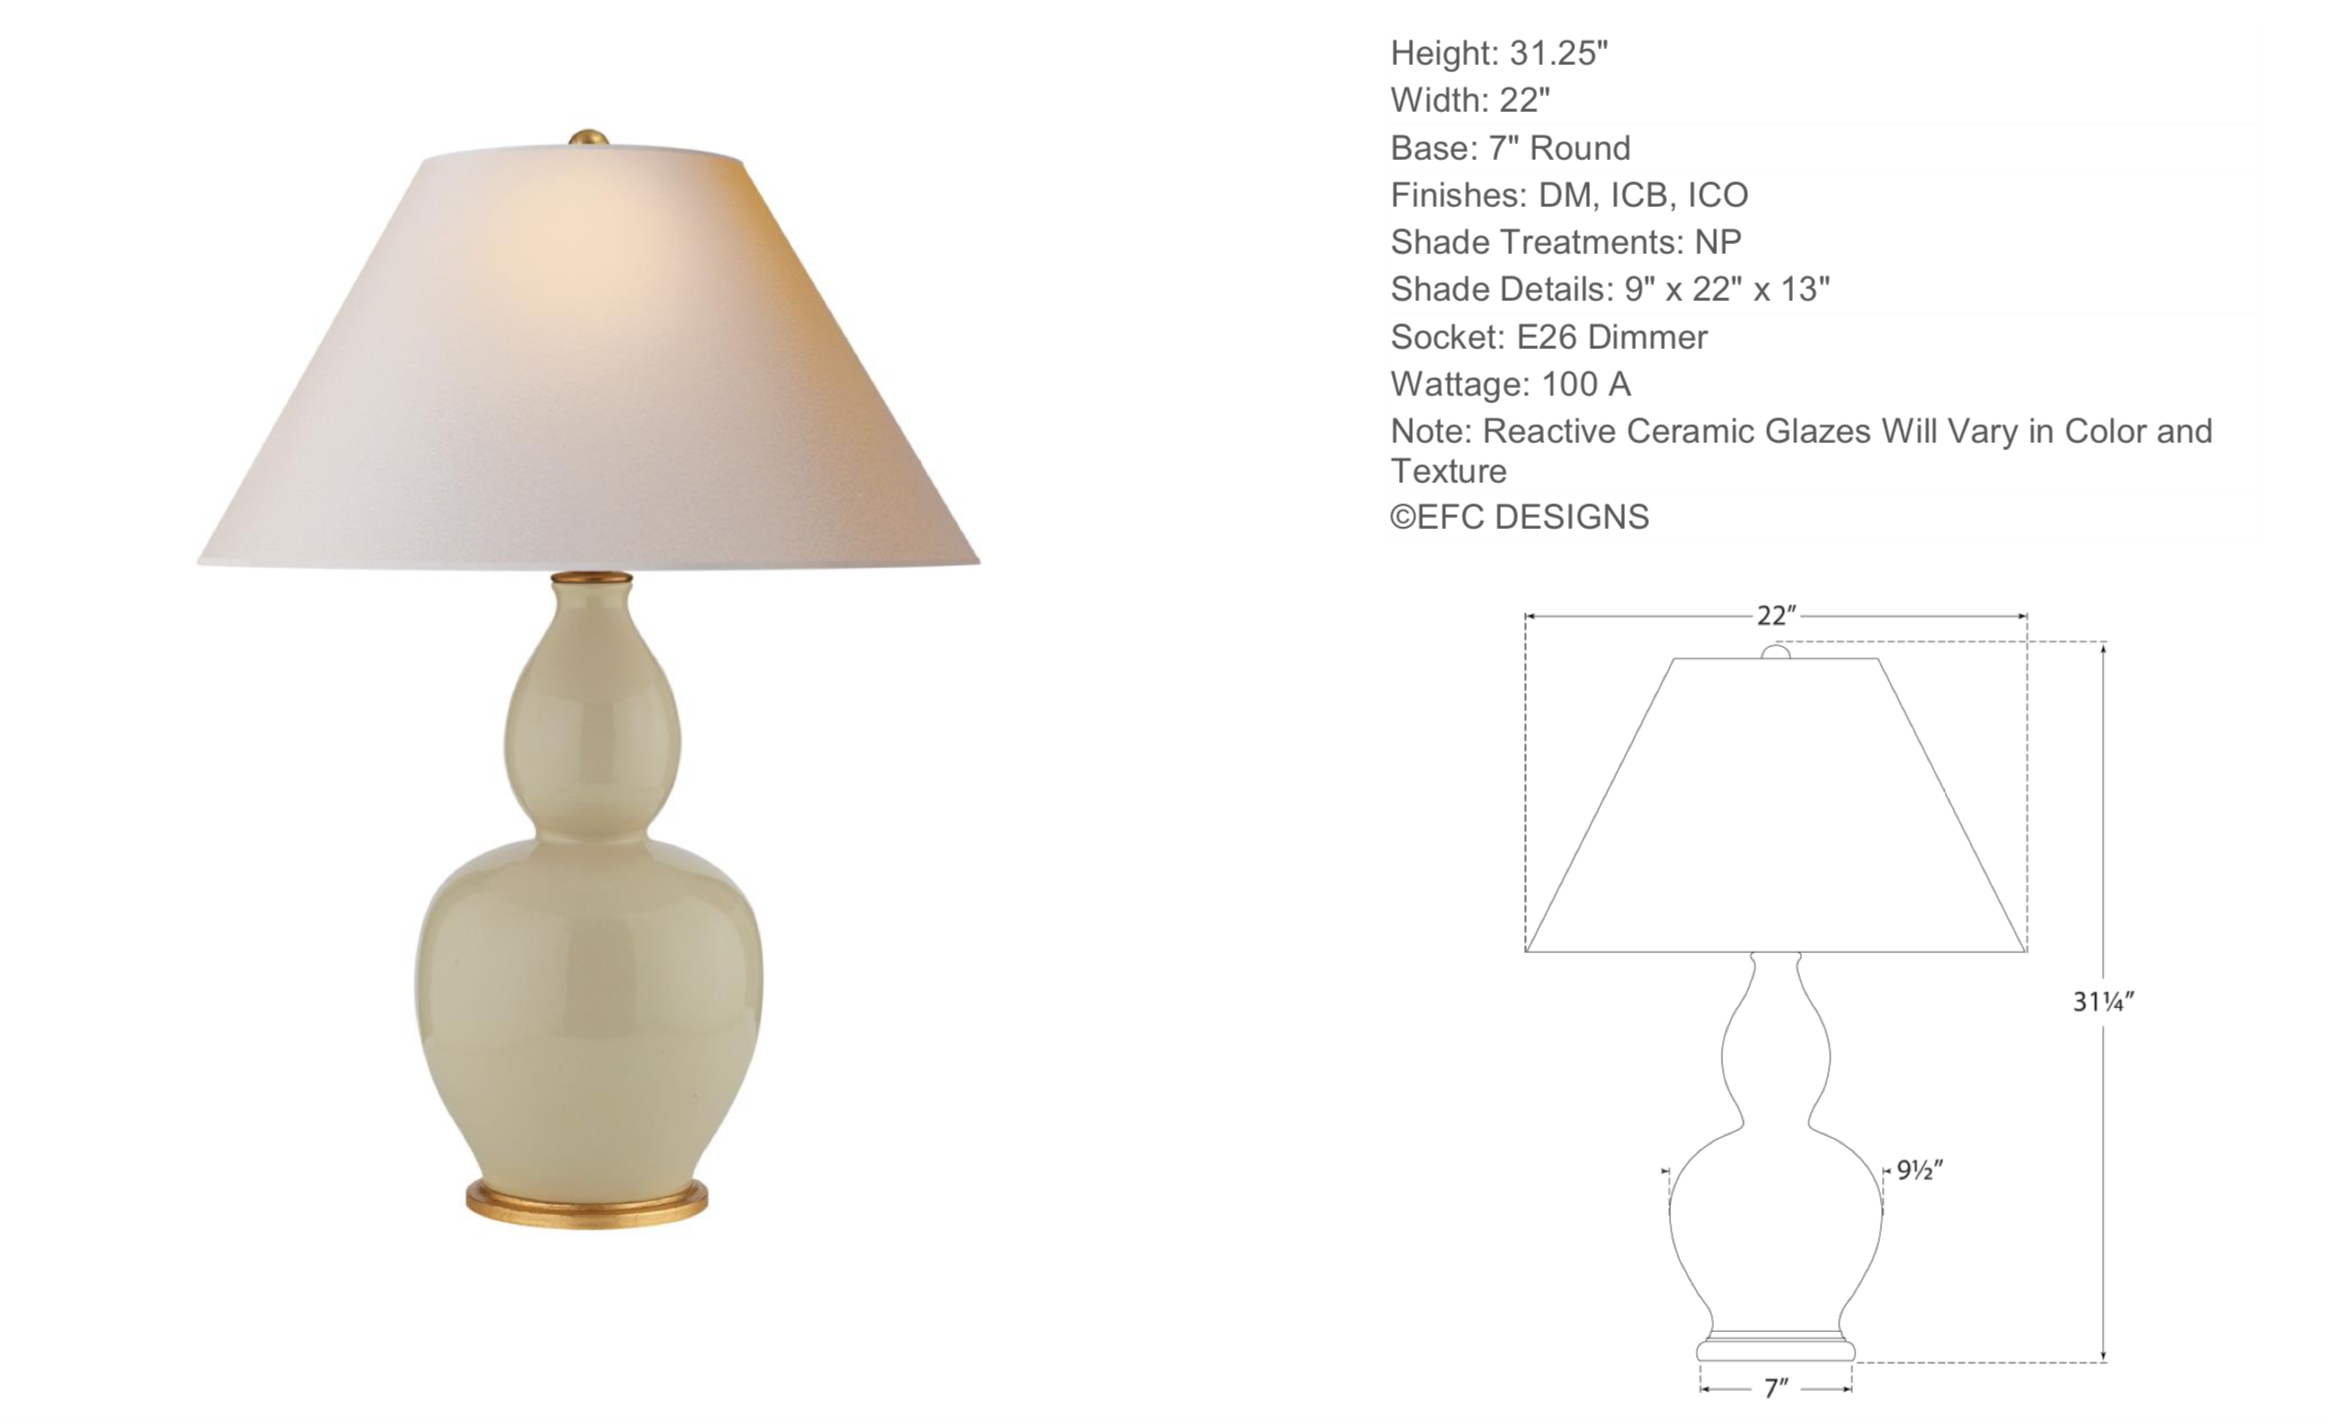 Double Gourd Table Lamp in Coconut